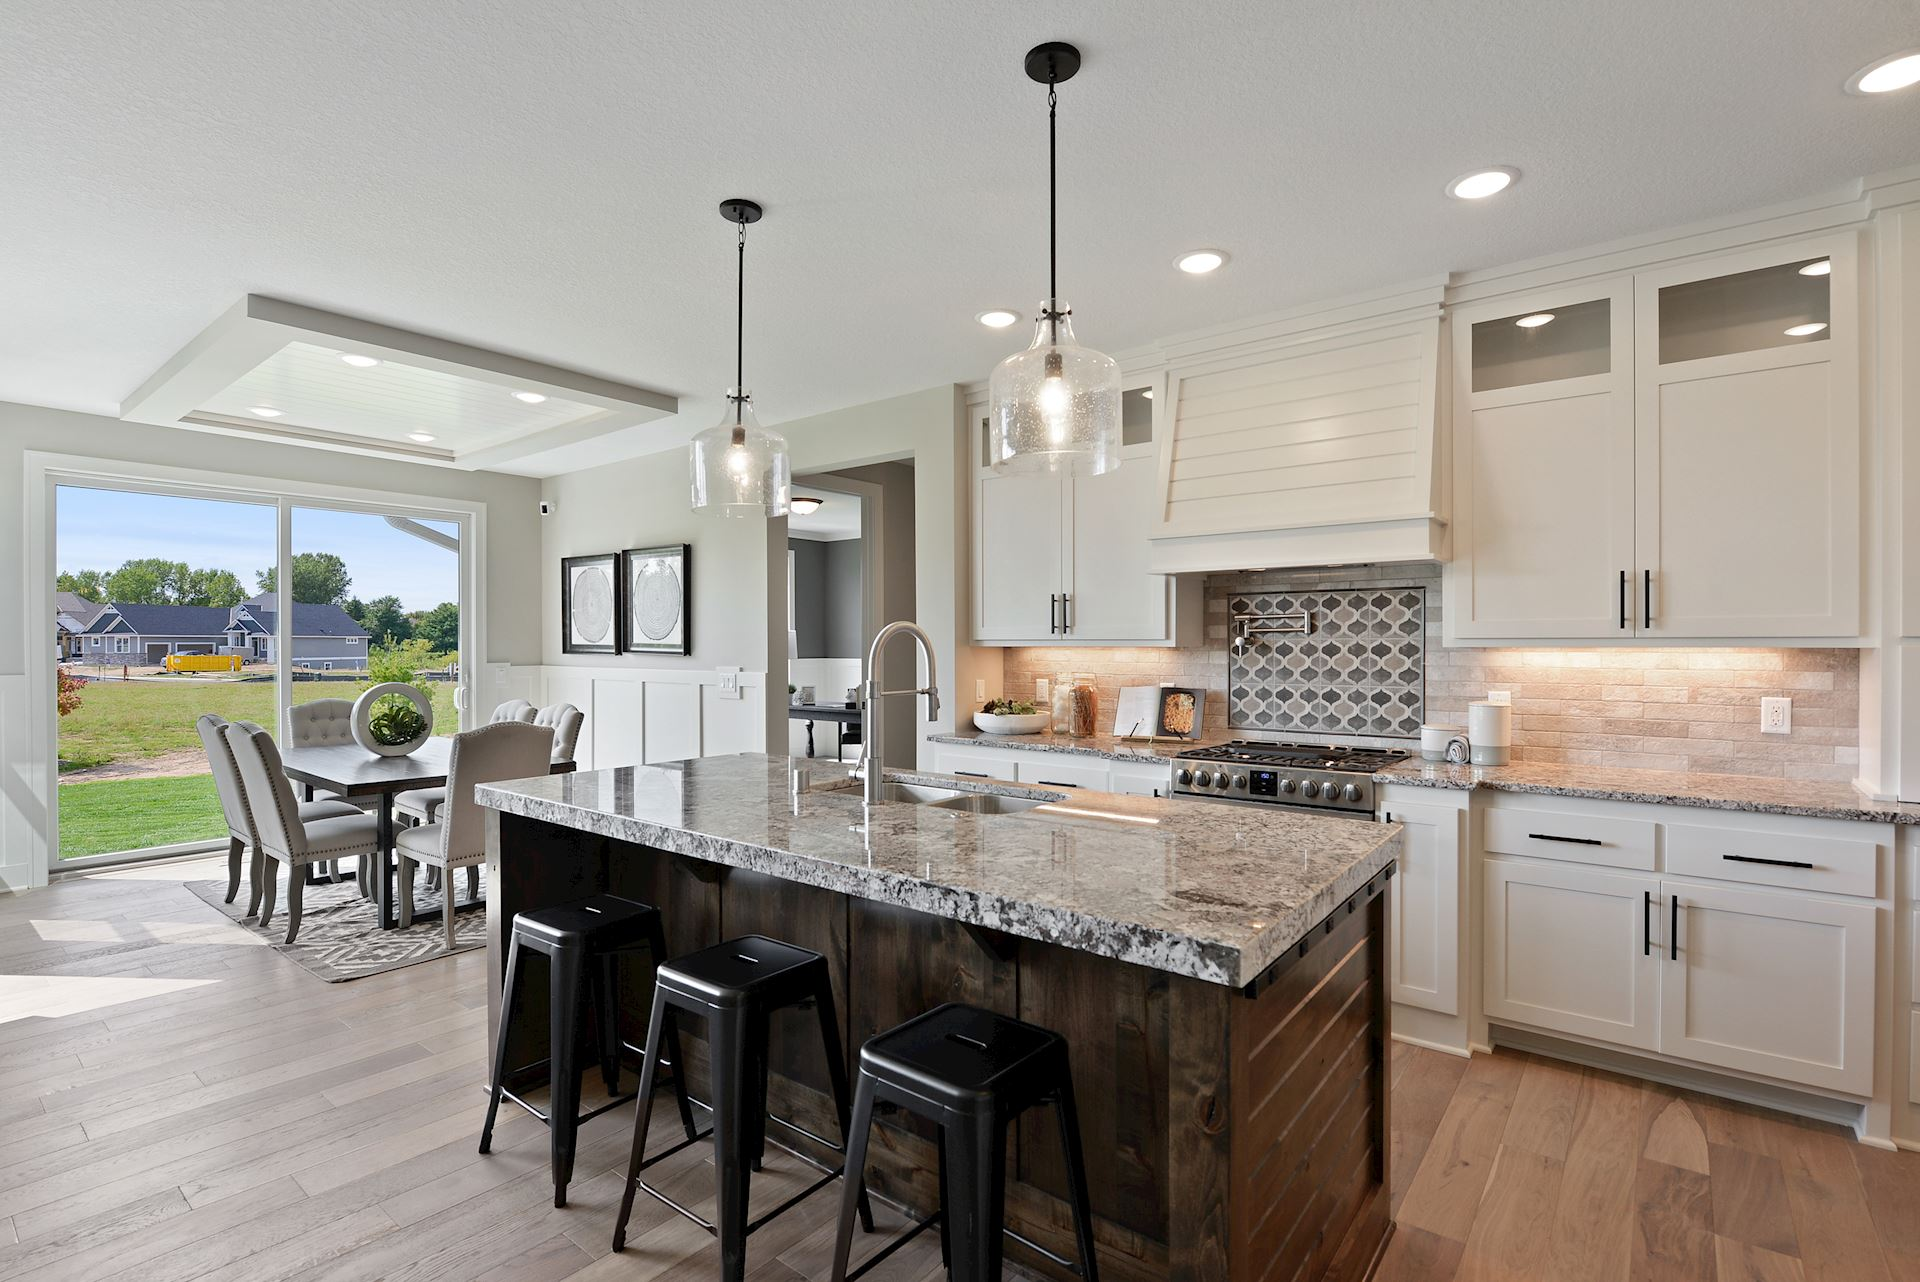 Custom designed kitchen and cabinetry with large island